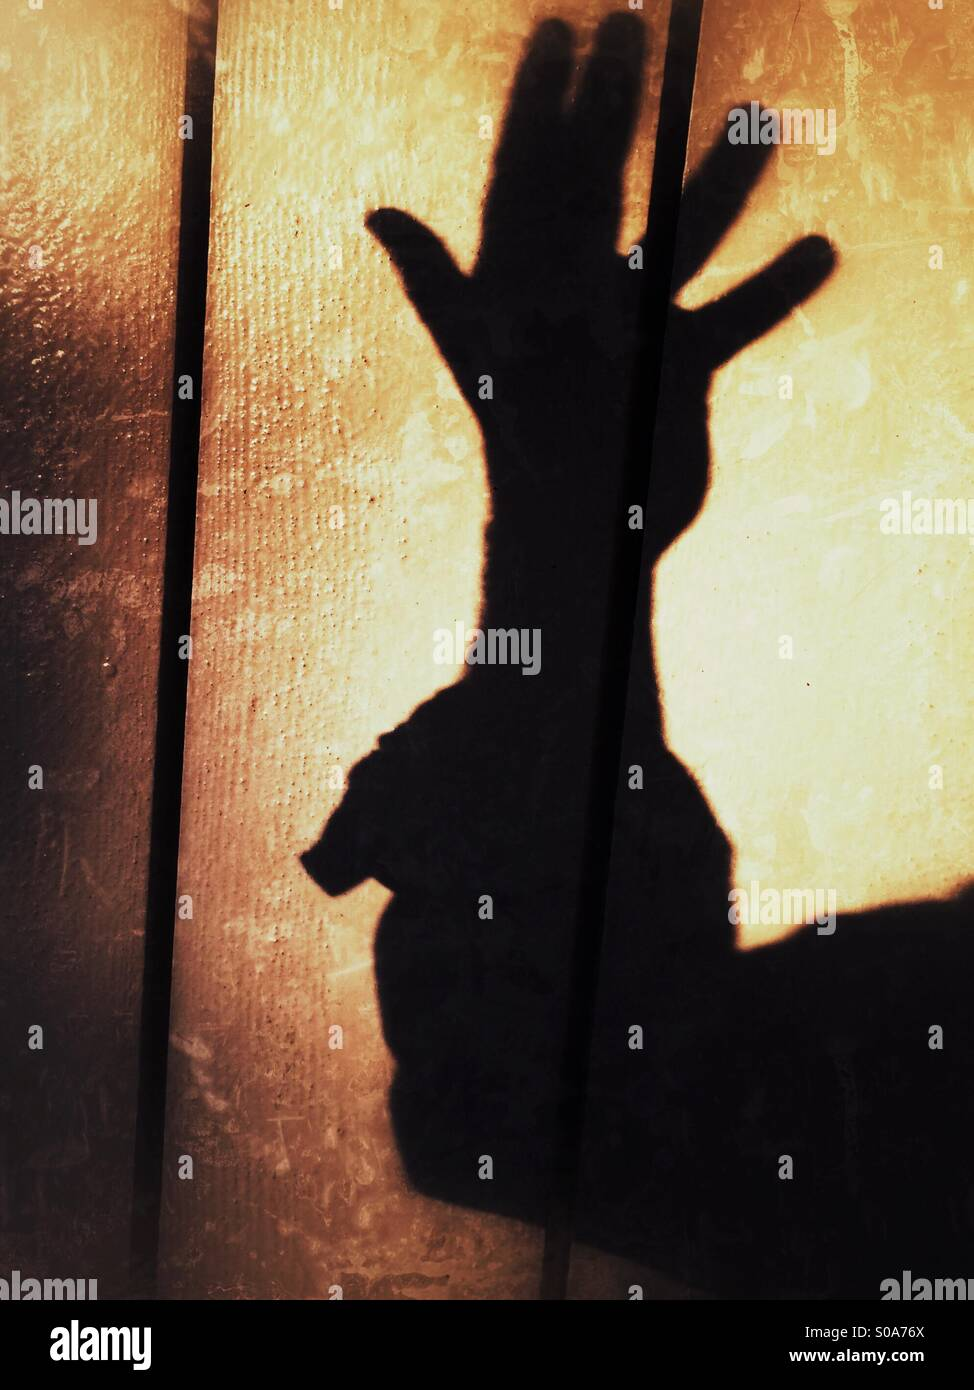 A man casting a shadow on a wall, counting on his hand. Number five. Stock Photo